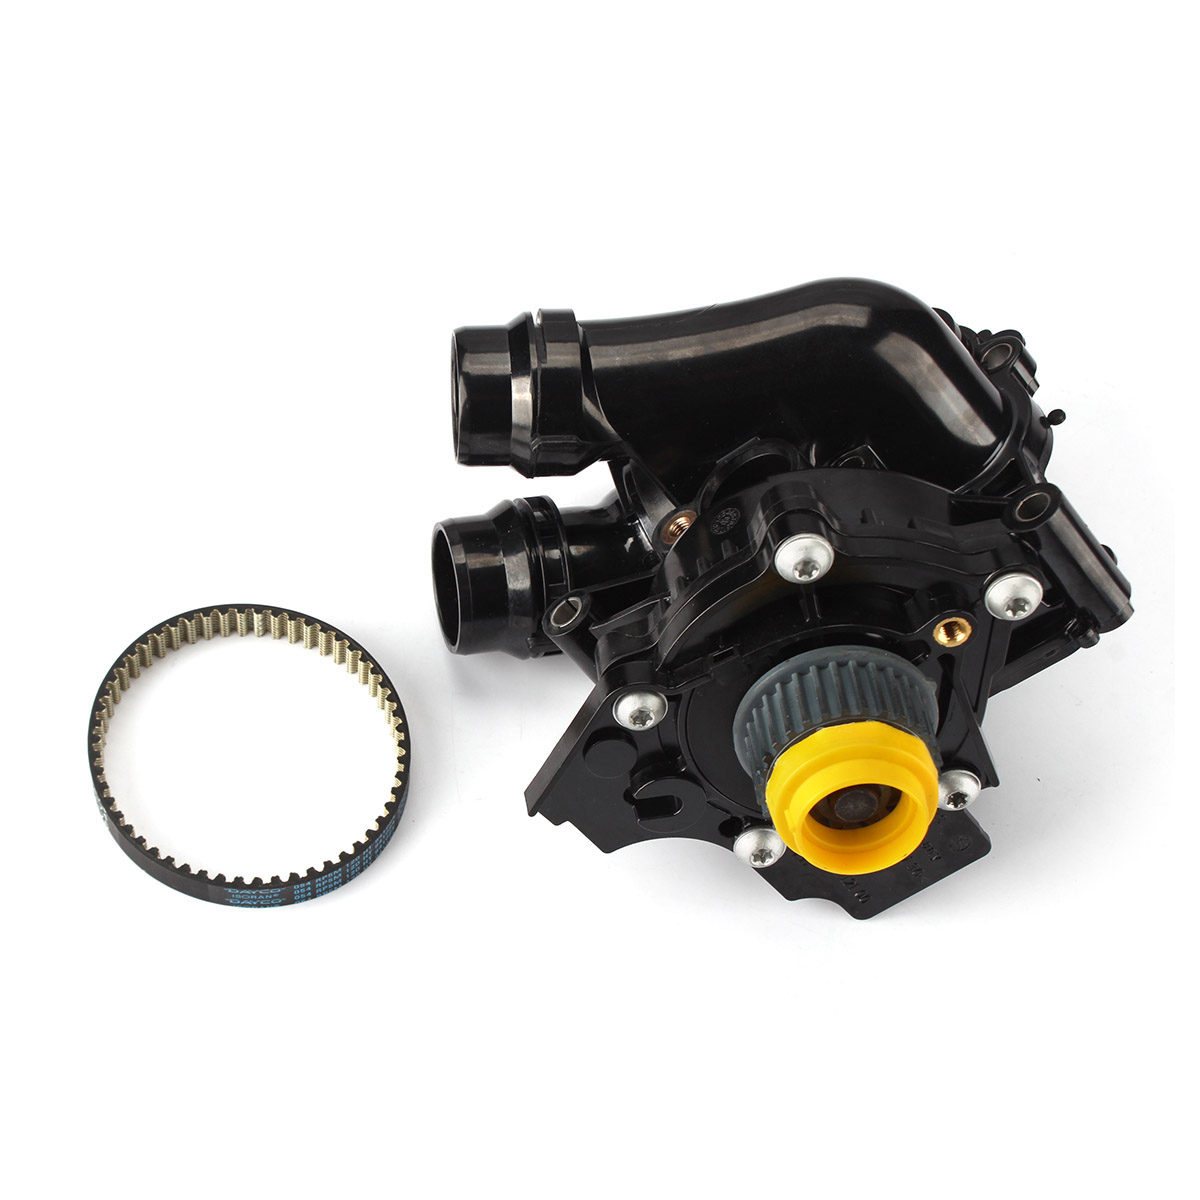 EA888 1.8TFSI 2.0TFSI Engine Water Pump w/Belt 06H 121 026 For VW Jetta GTI Passat AUDI SEAT oem engine water pump fit vw jetta gti golf gti tiguan passat audi a3 a4 a5 a6 a8 ea888 1 8tfsi 2 0tfsi 06h 121 026 cq